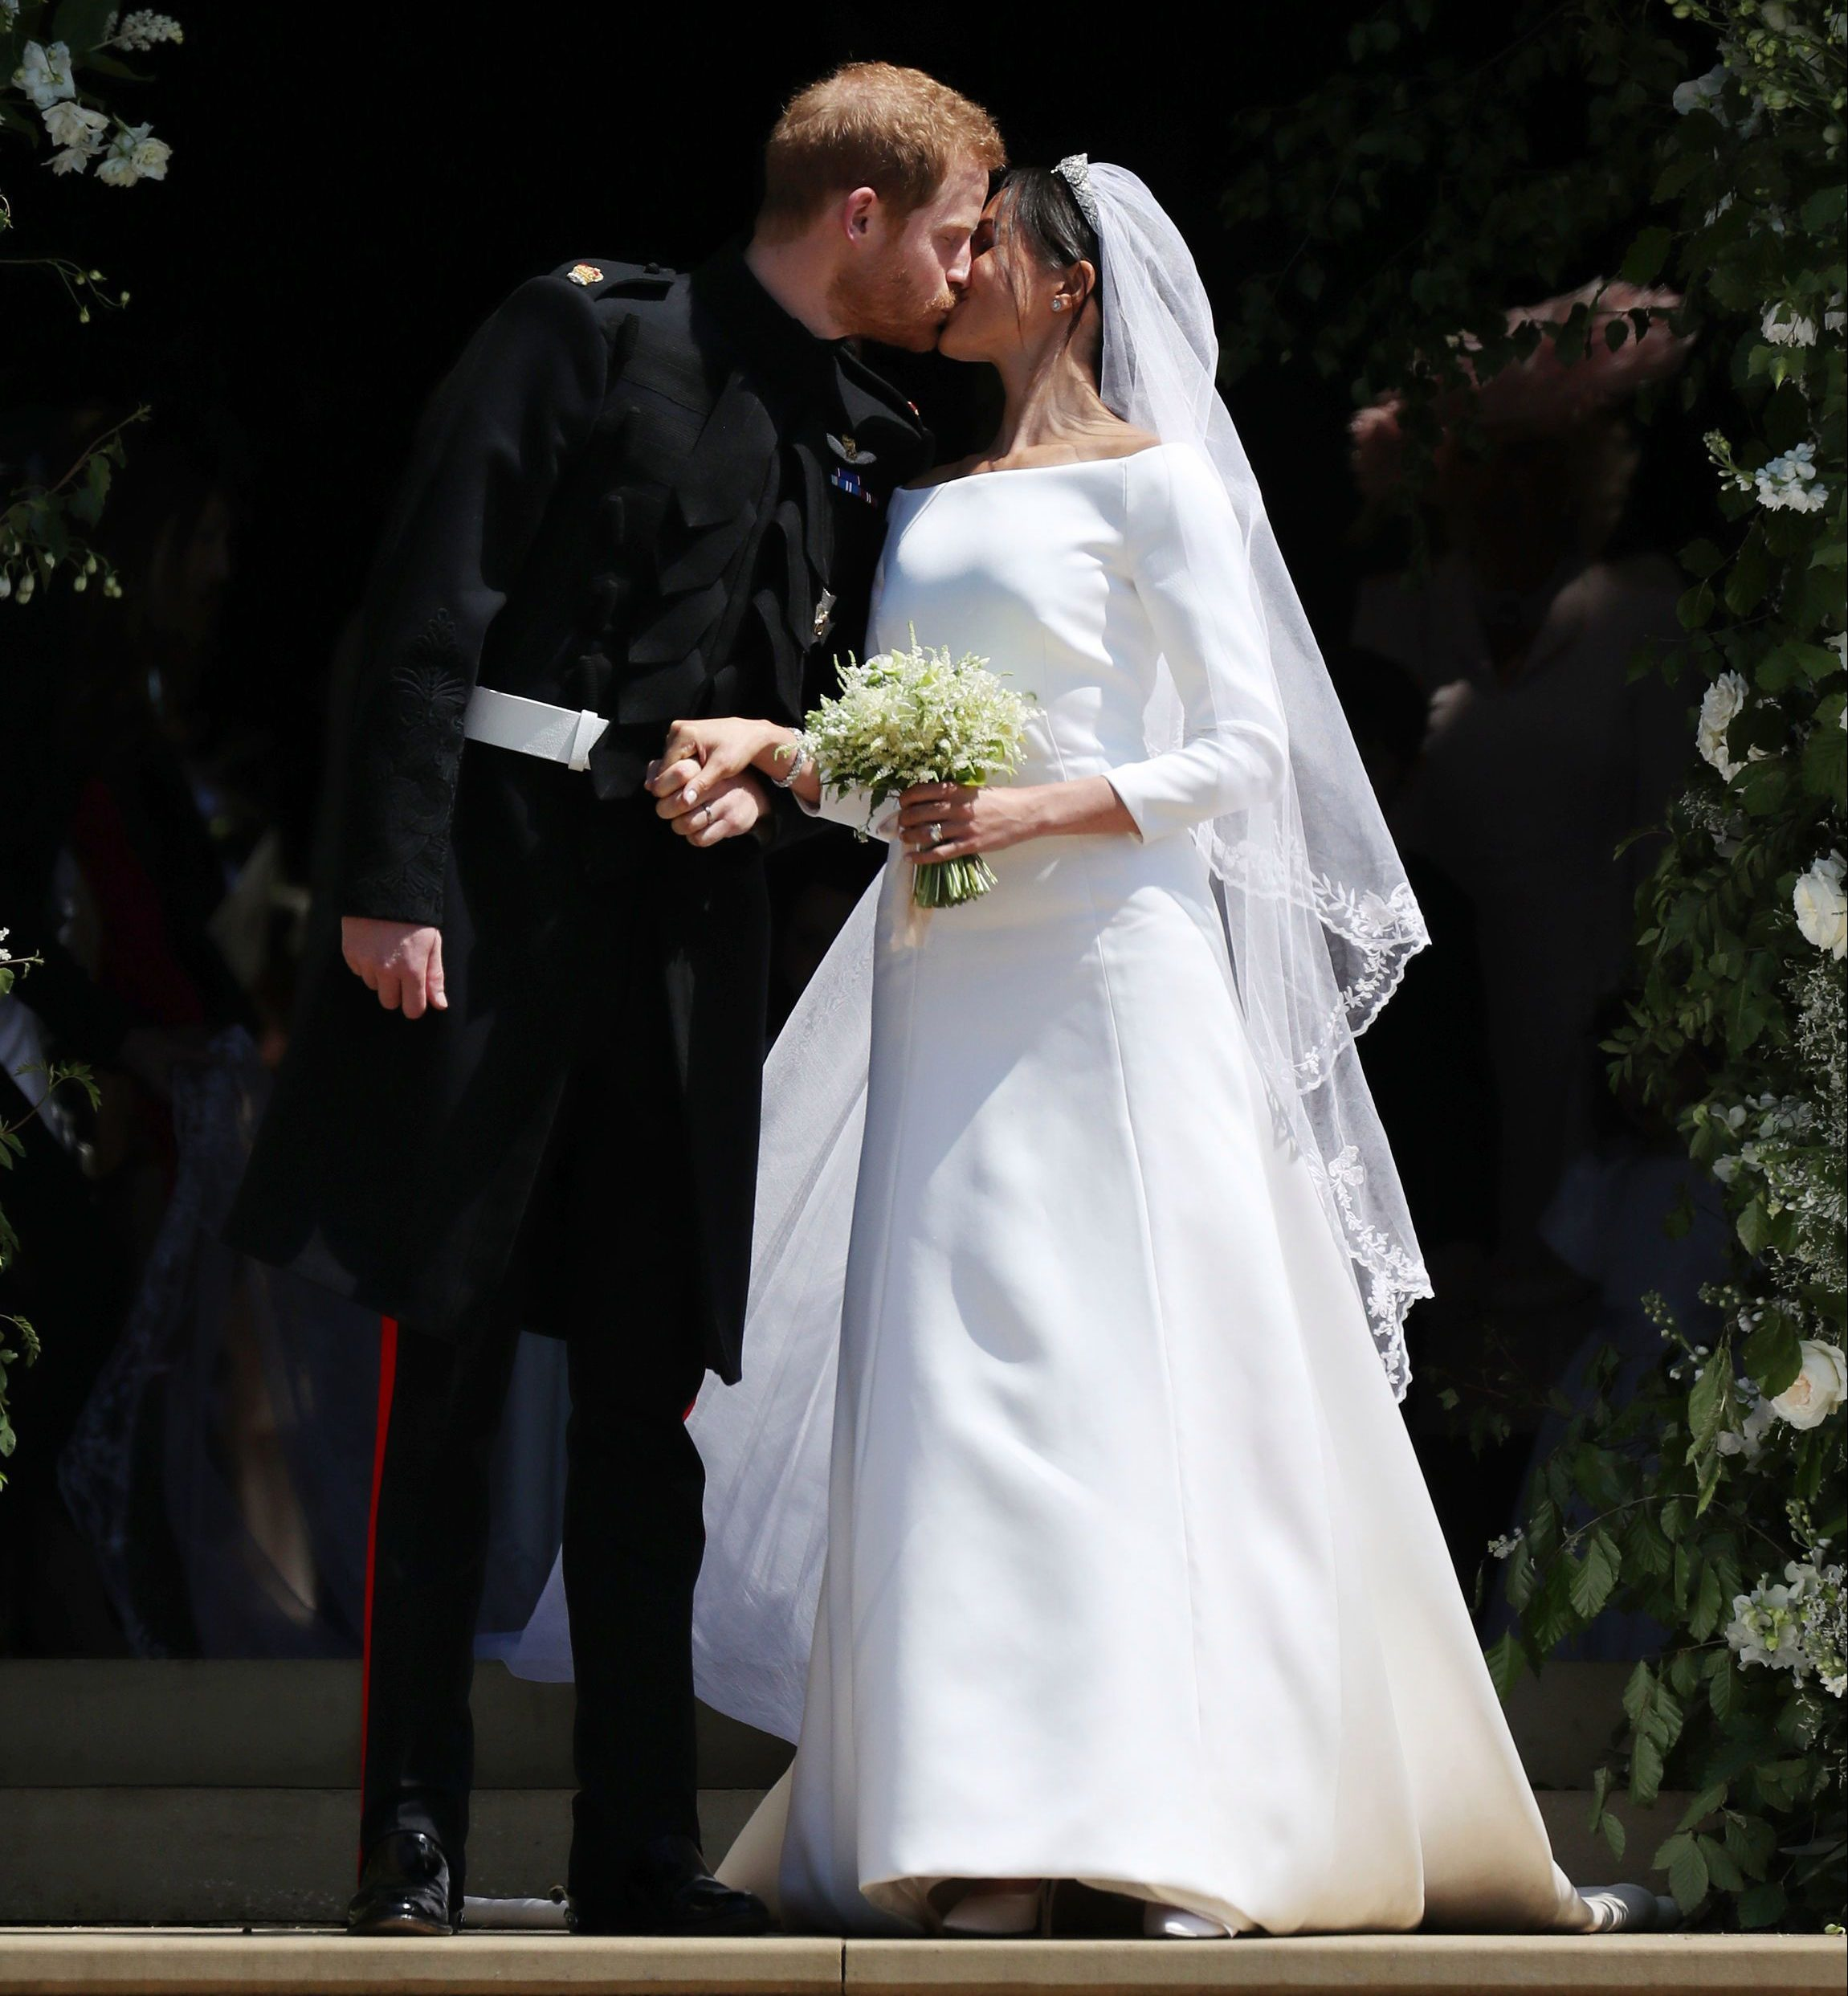 Prince Harry and Meghan Markle kiss on their wedding day in 2018